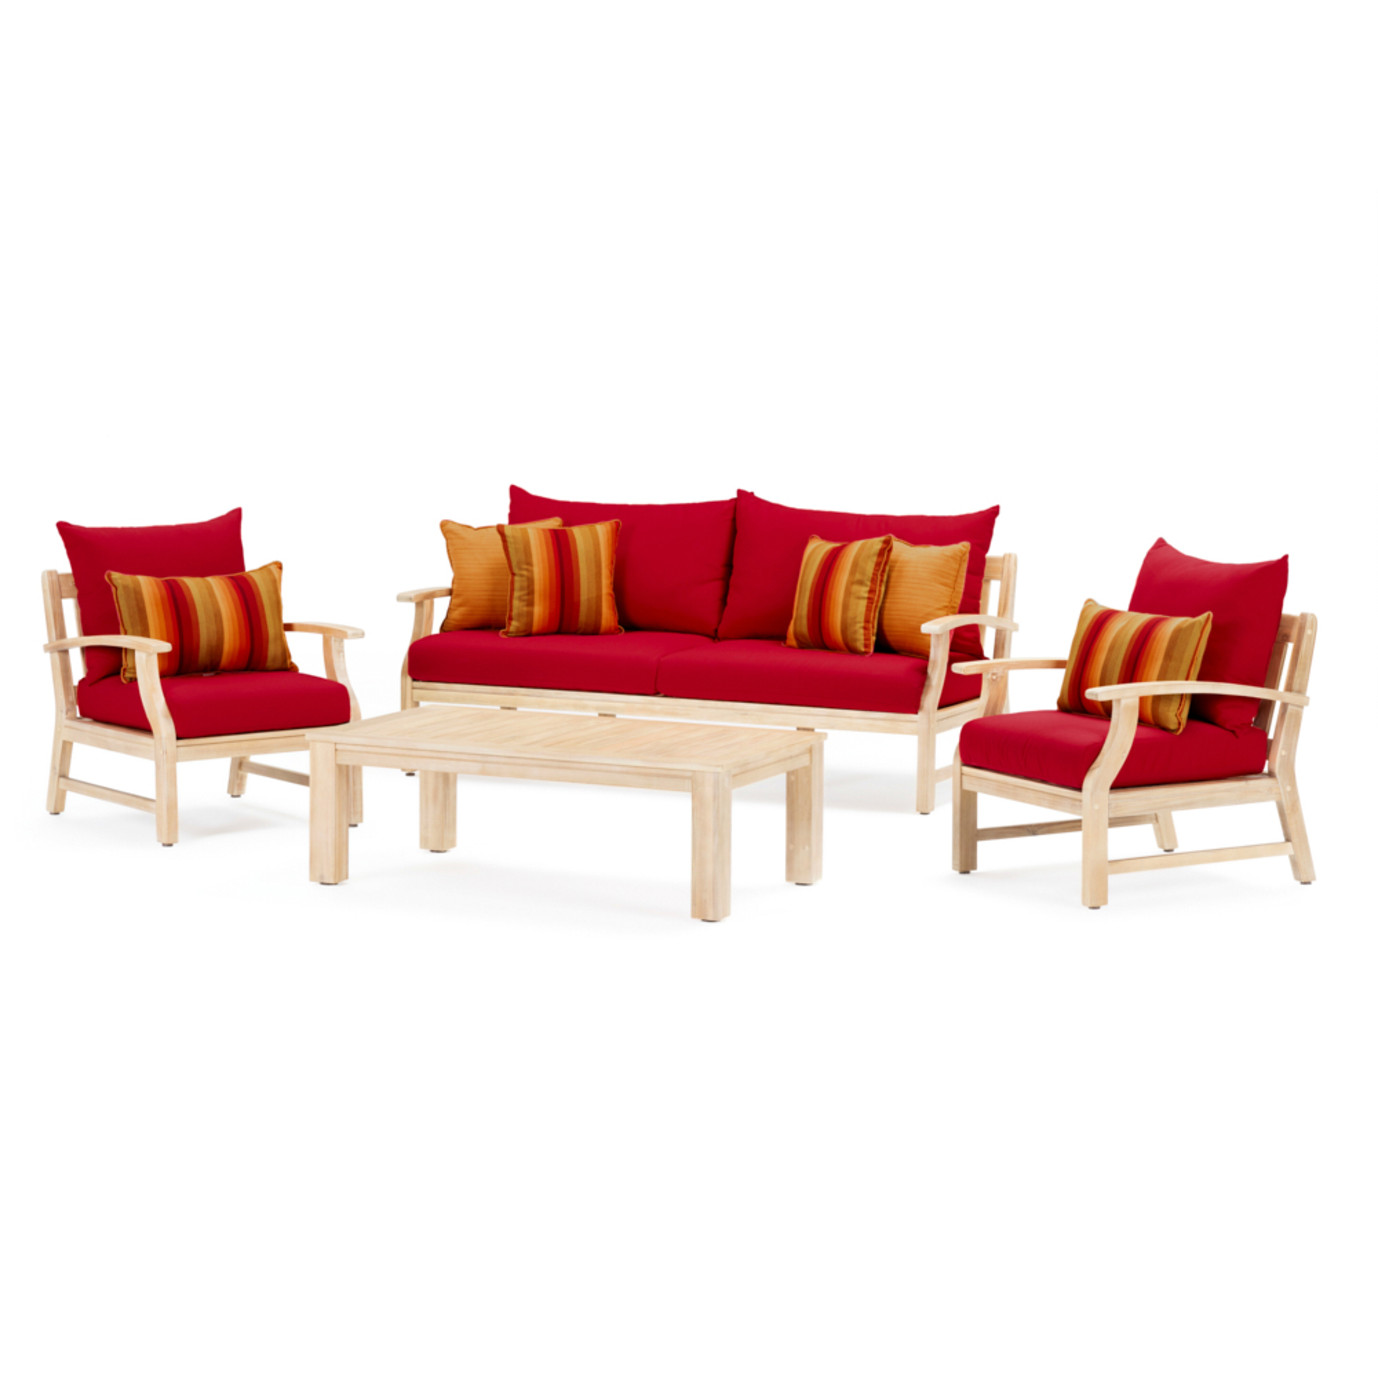 Kooper 4 Piece Outdoor Sofa & Club Chair Set - Sunset Red